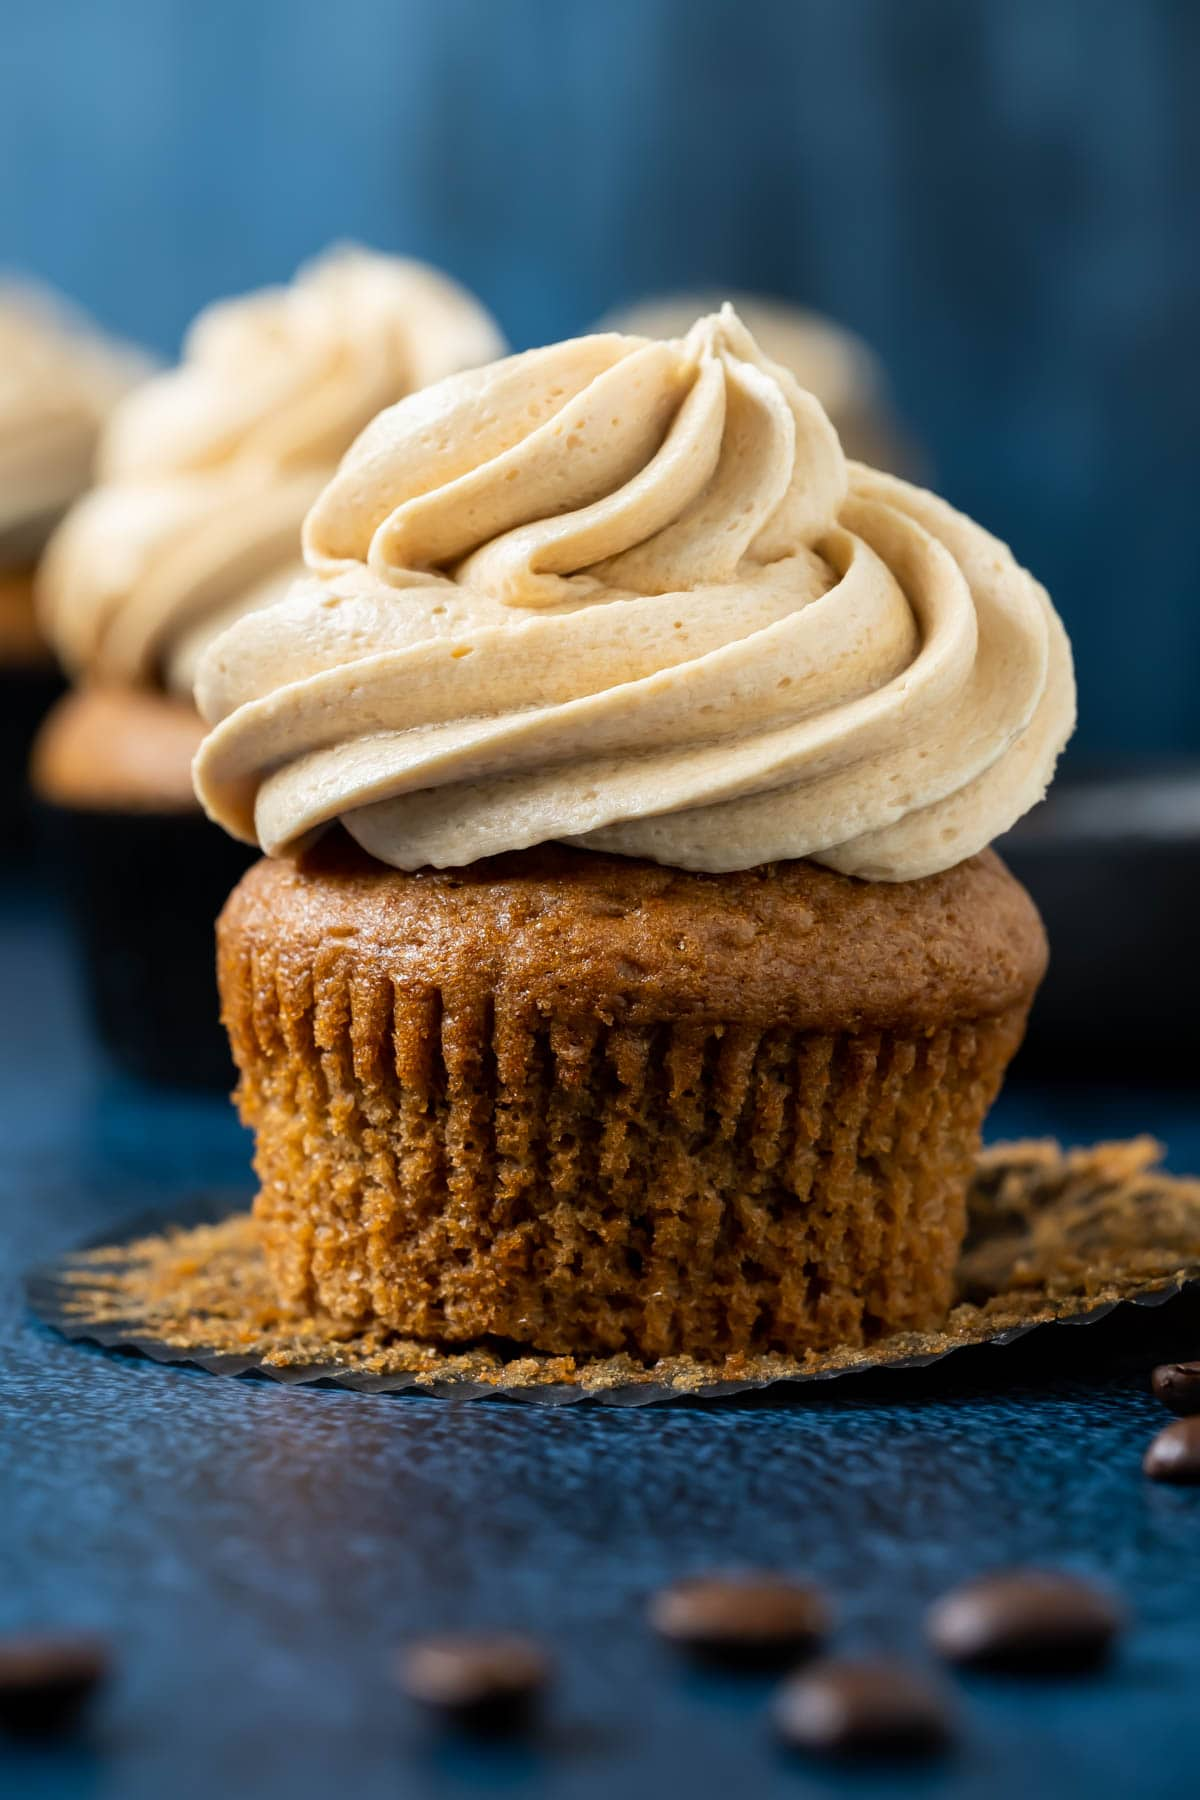 Espresso cupcake with the liner pulled down.